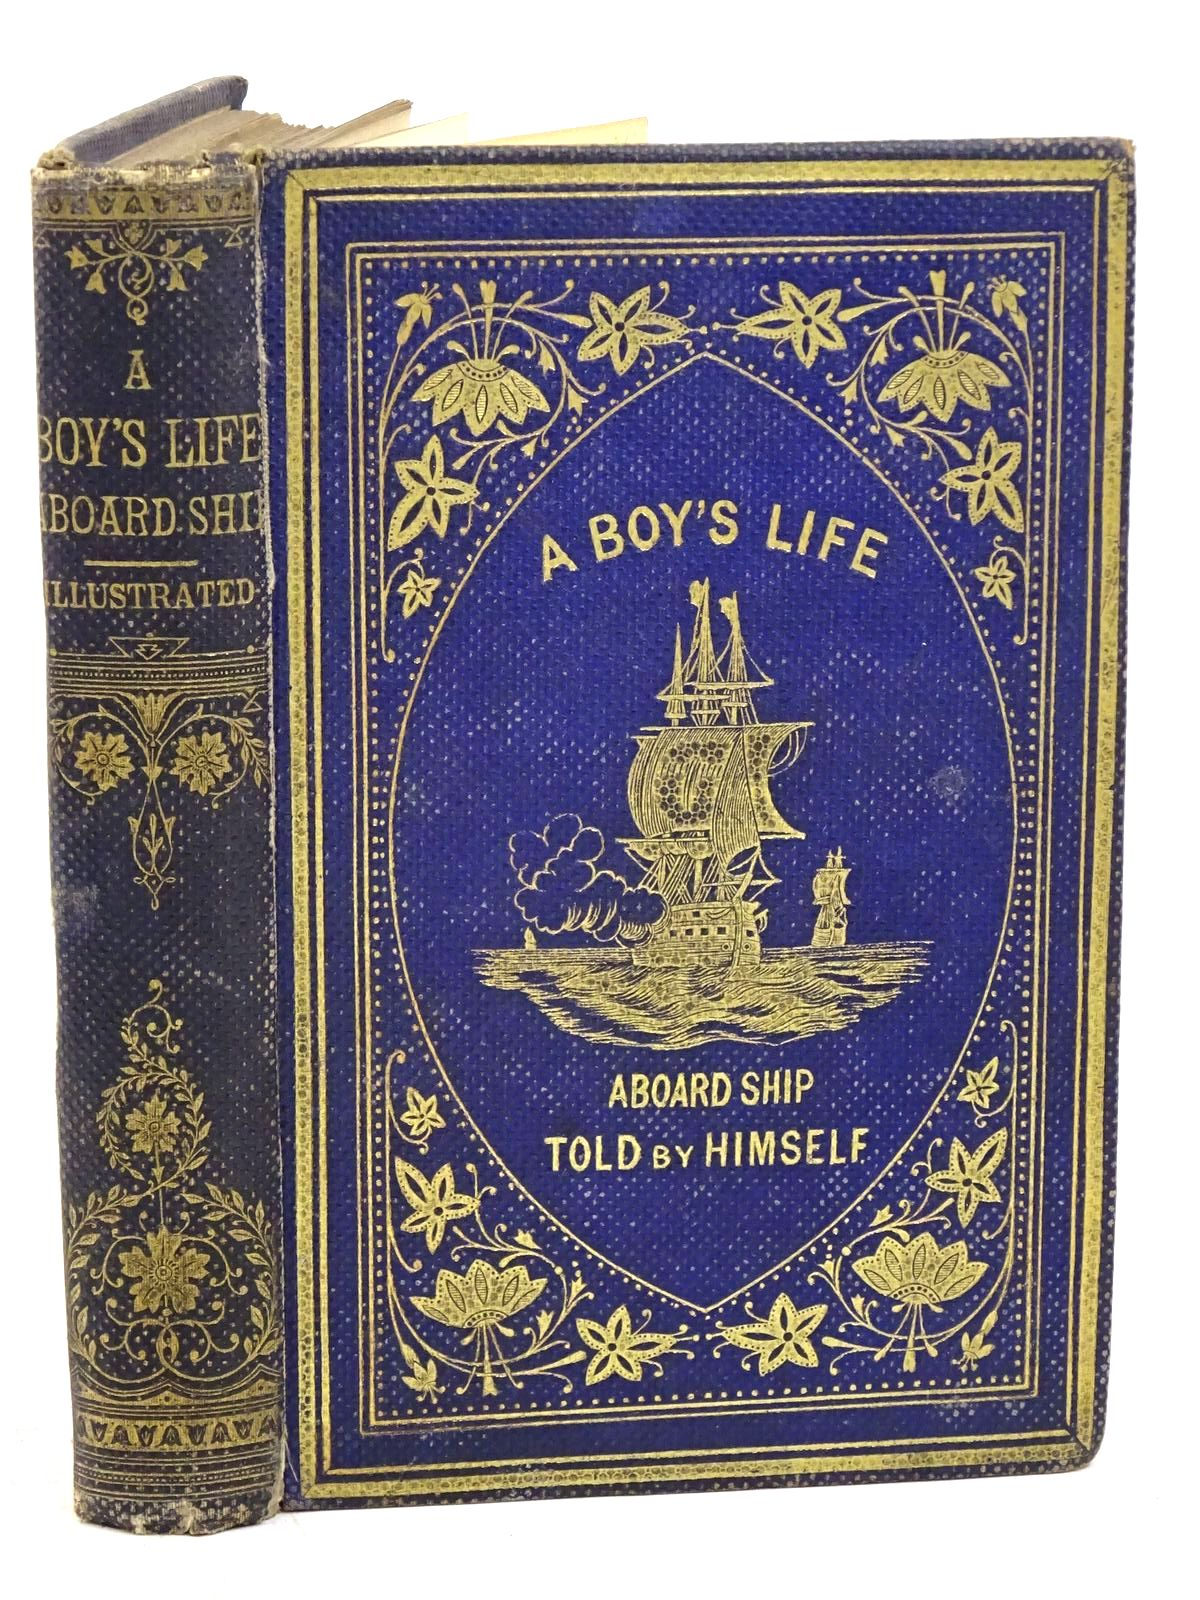 Photo of A BOY'S LIFE ABOARD SHIP published by Ward & Lock (STOCK CODE: 1317964)  for sale by Stella & Rose's Books